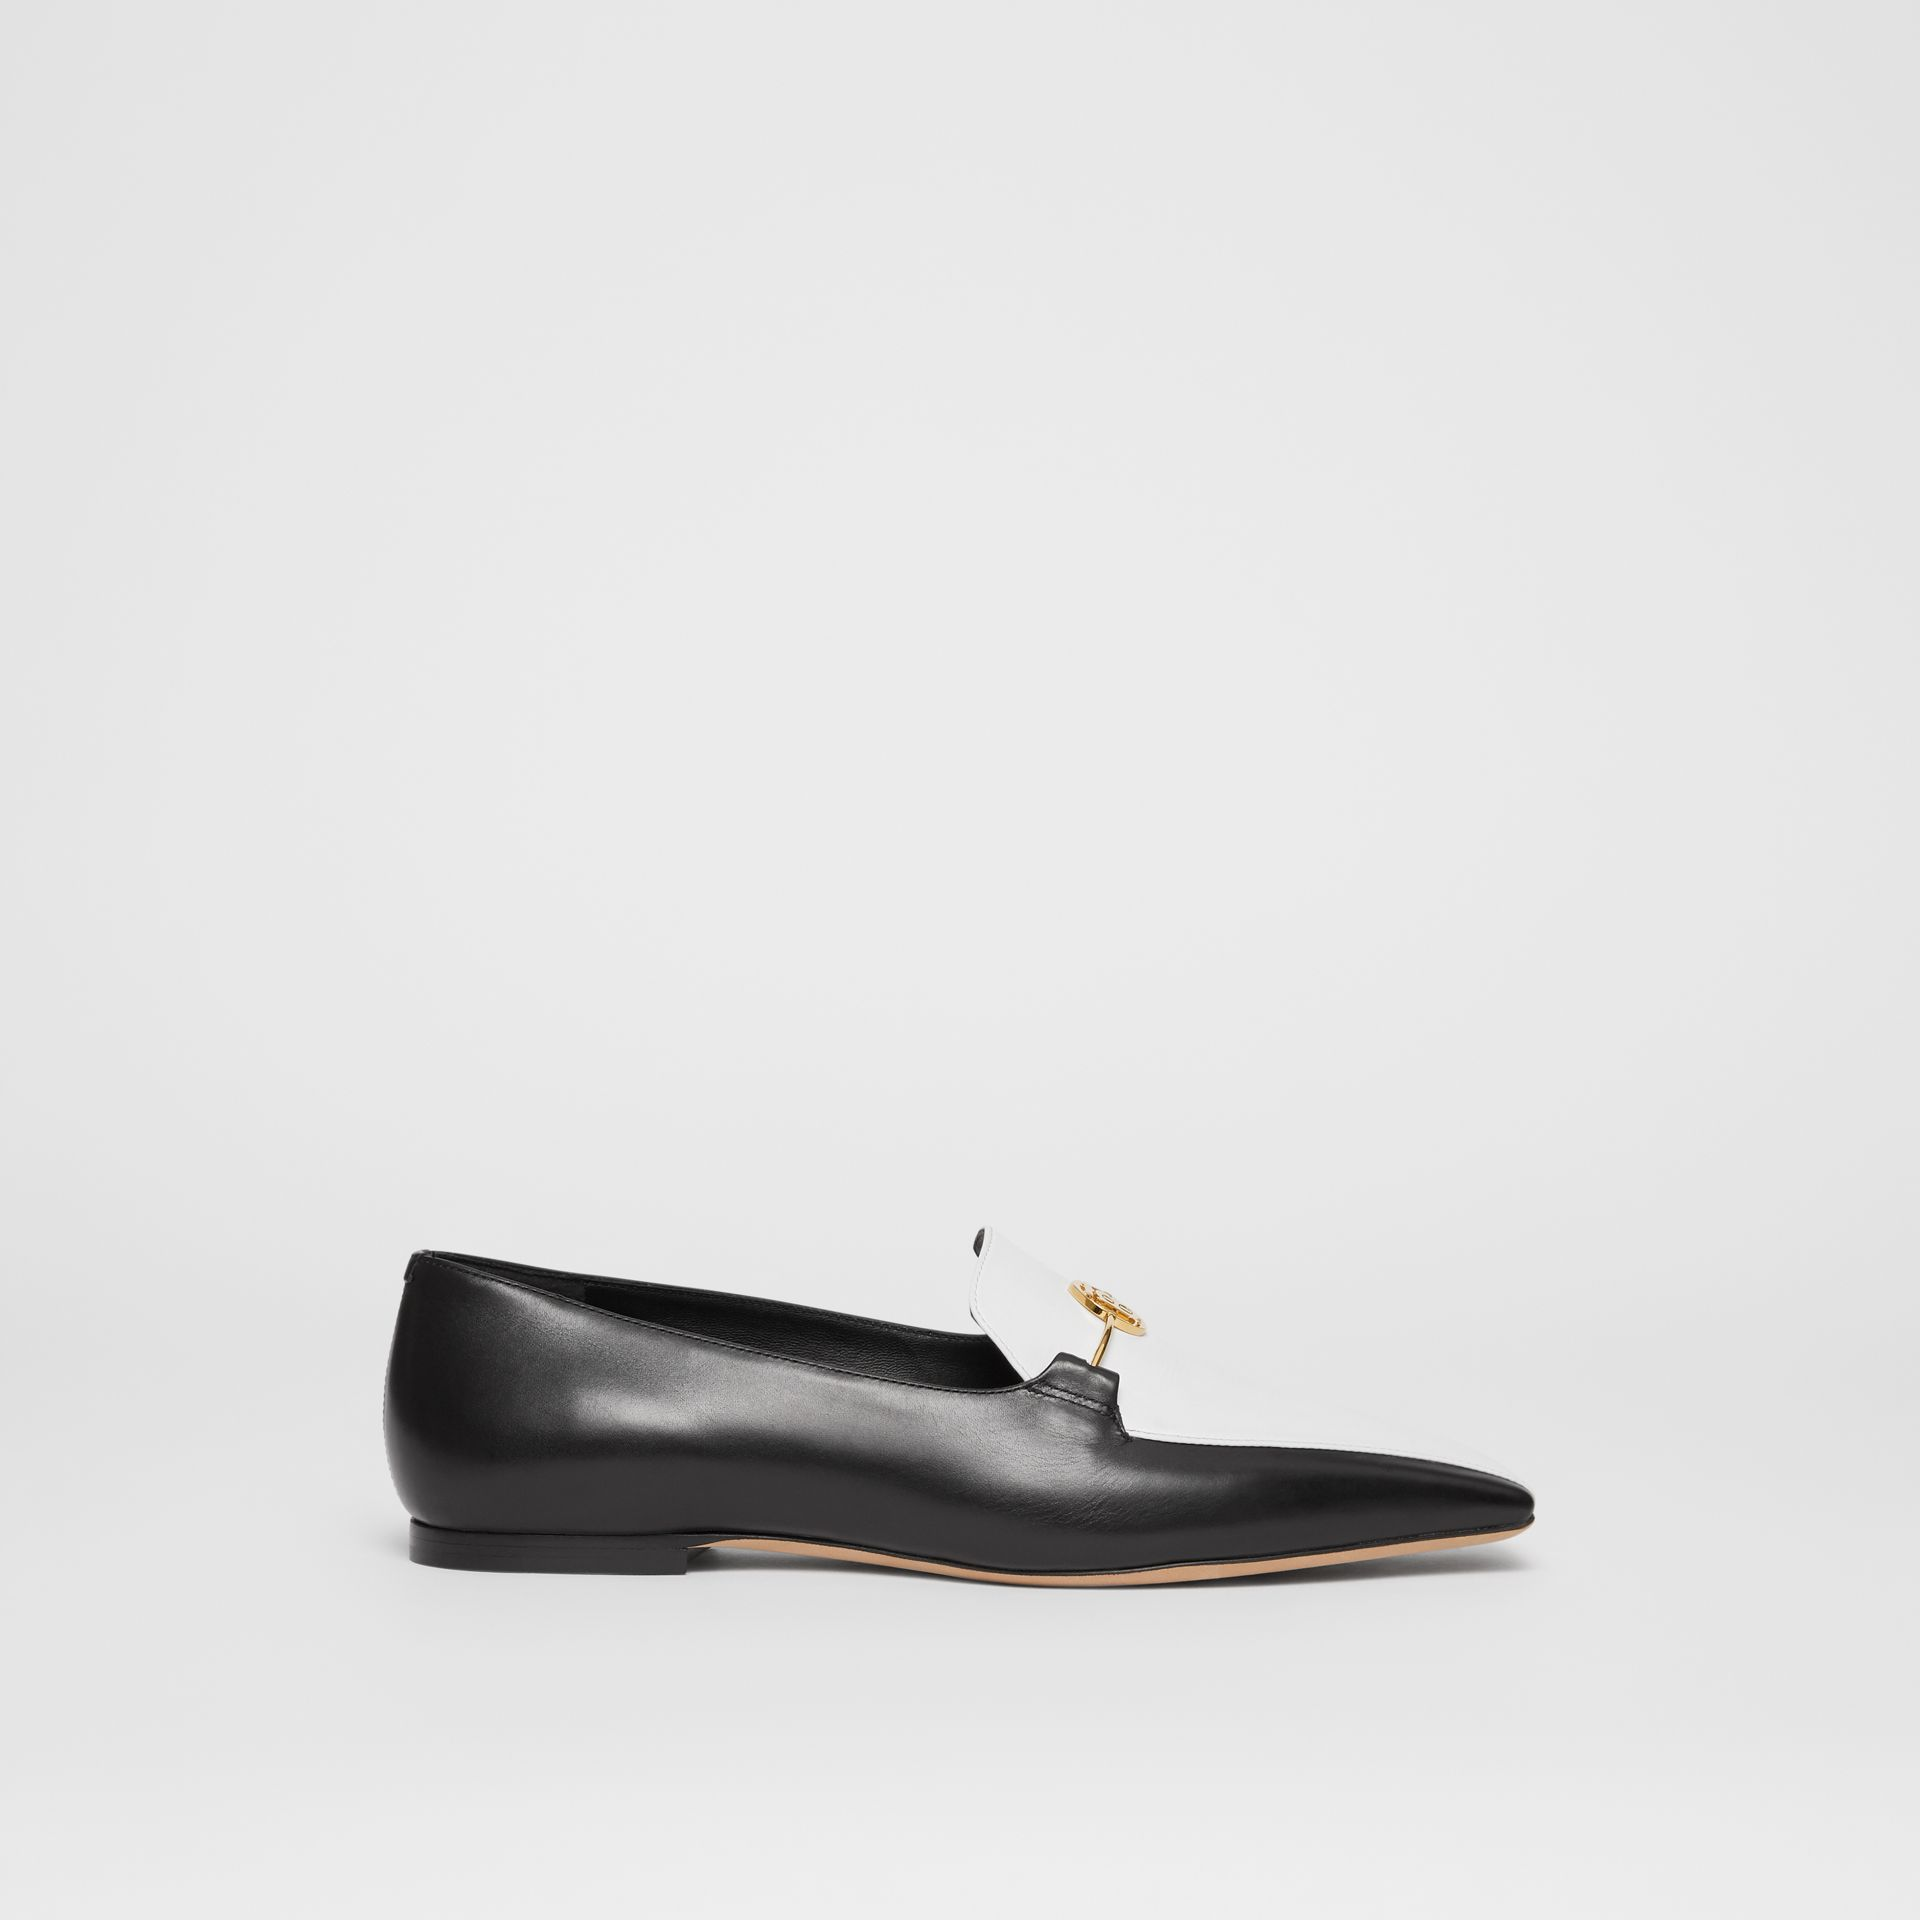 Monogram Motif Two-tone Leather Loafers in Black/white - Women | Burberry Canada - gallery image 5